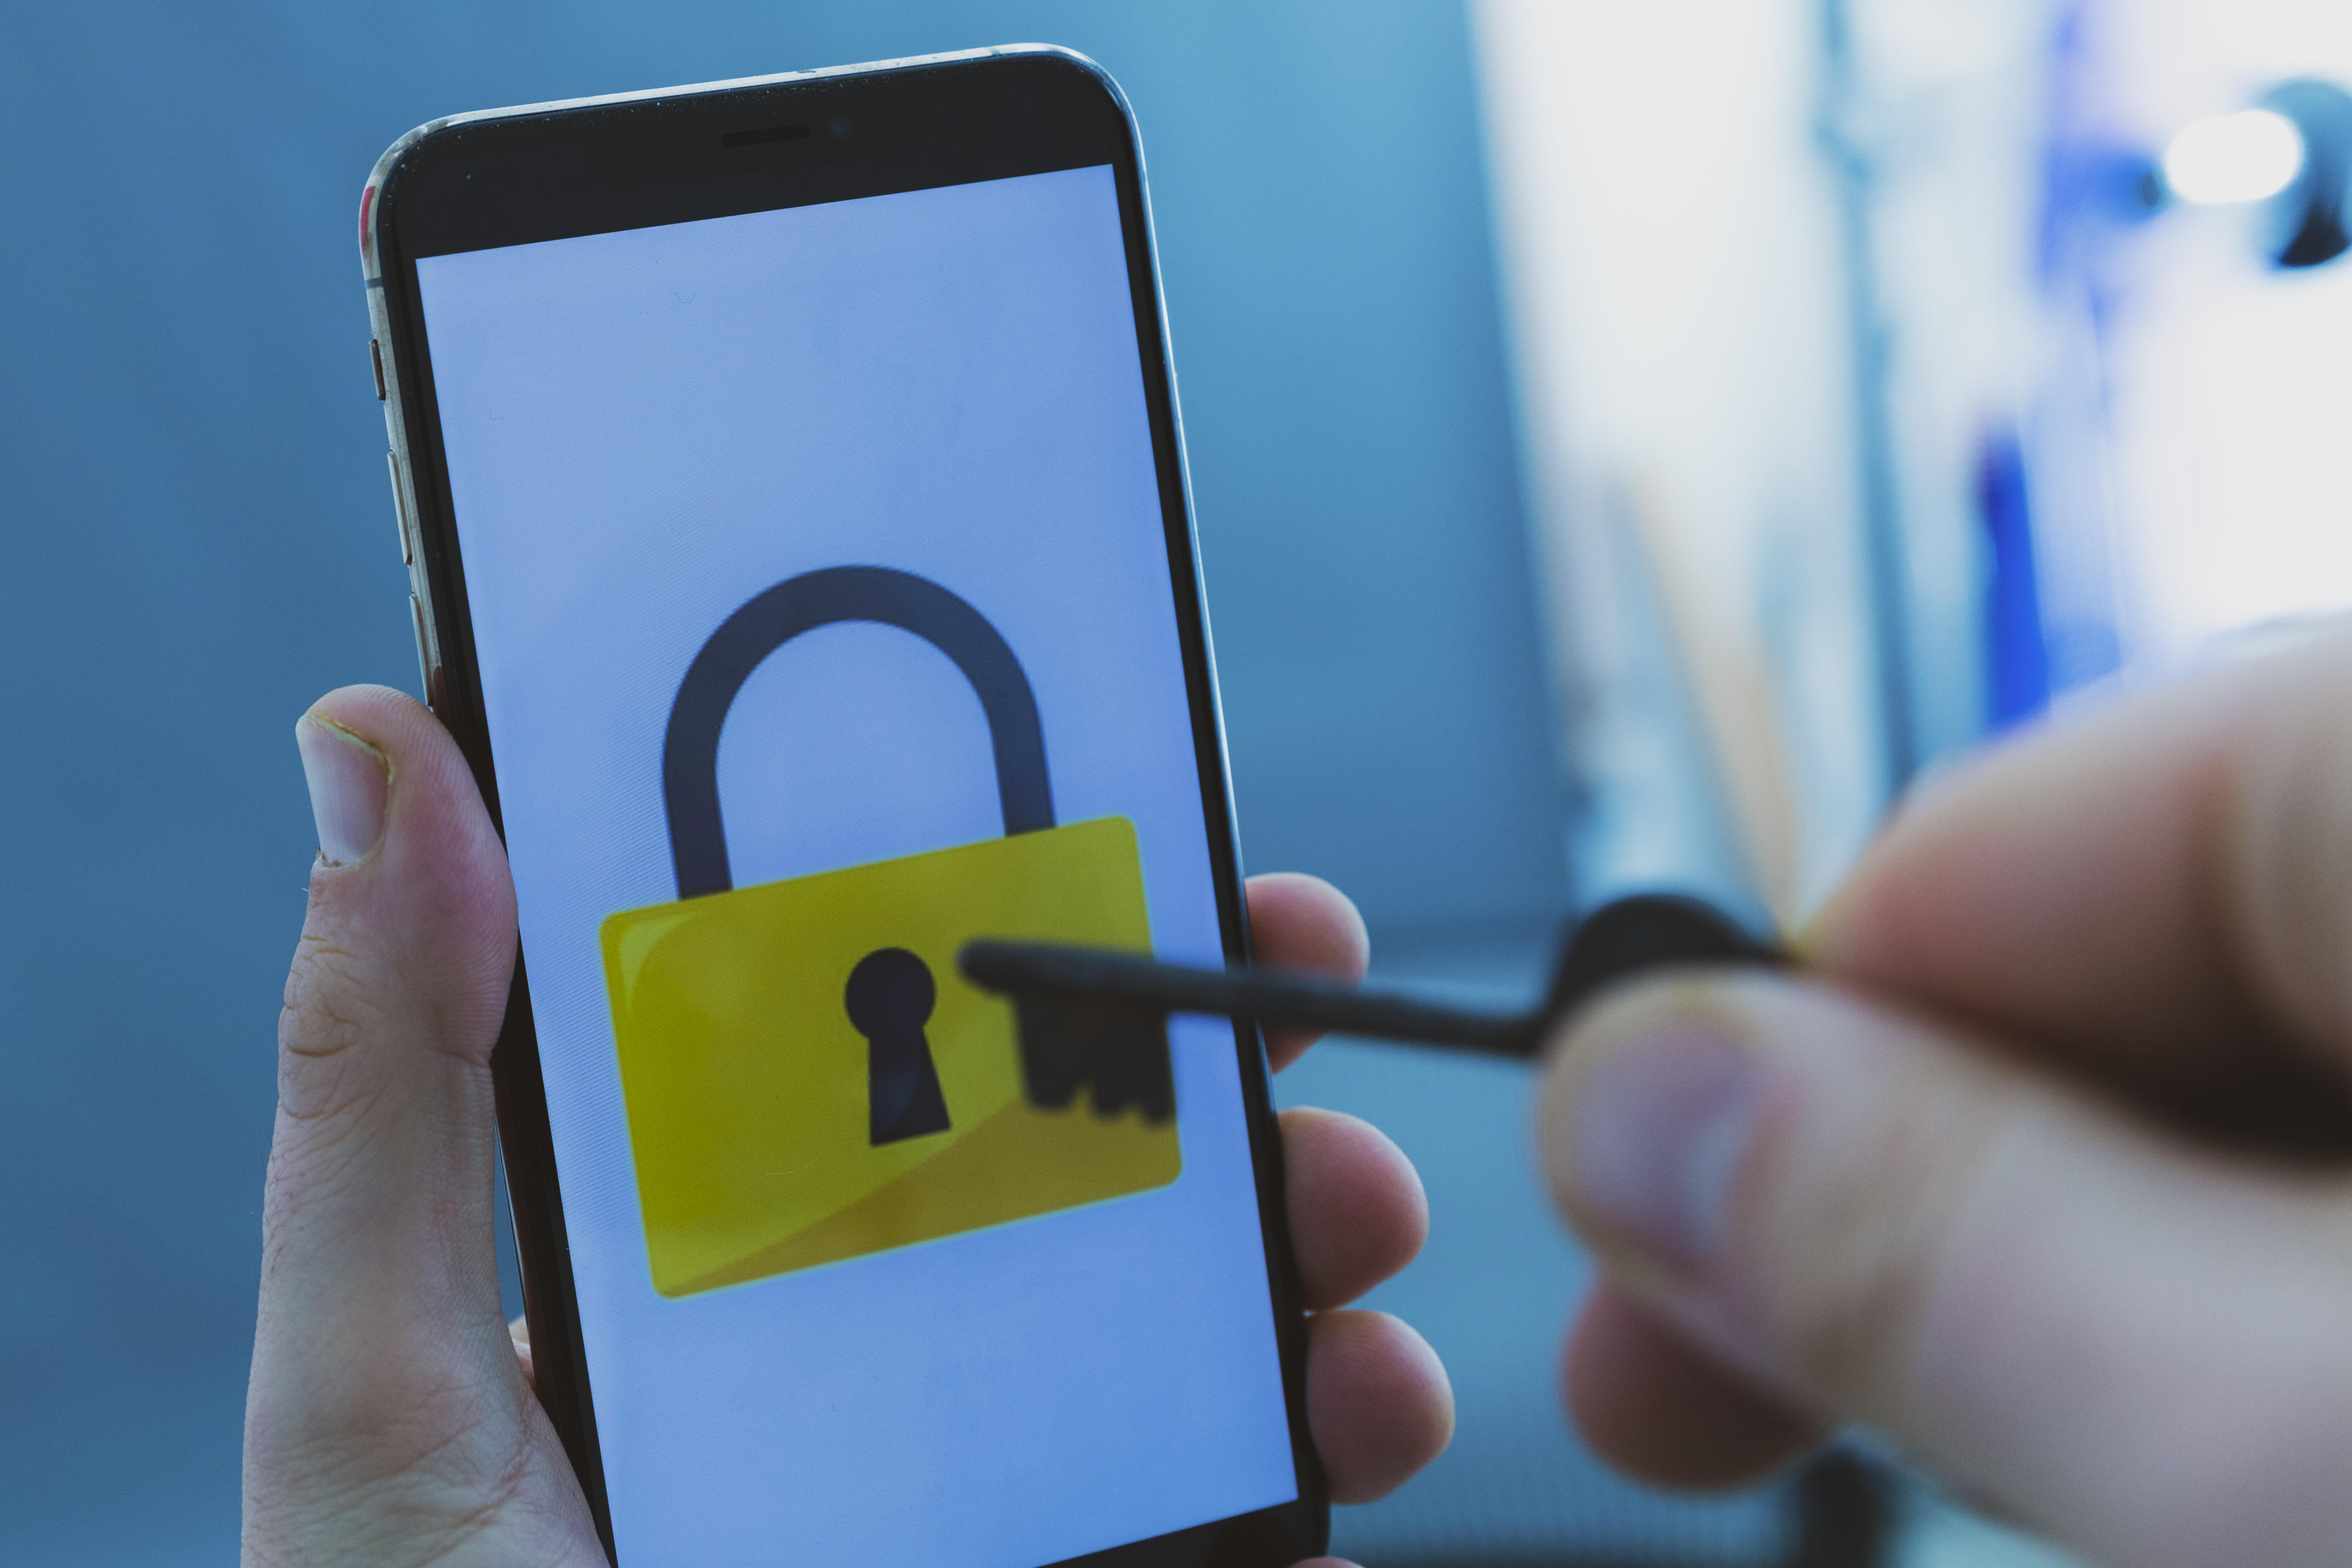 data-privacy-security-hackers-hacking-unlock-iphone-0996